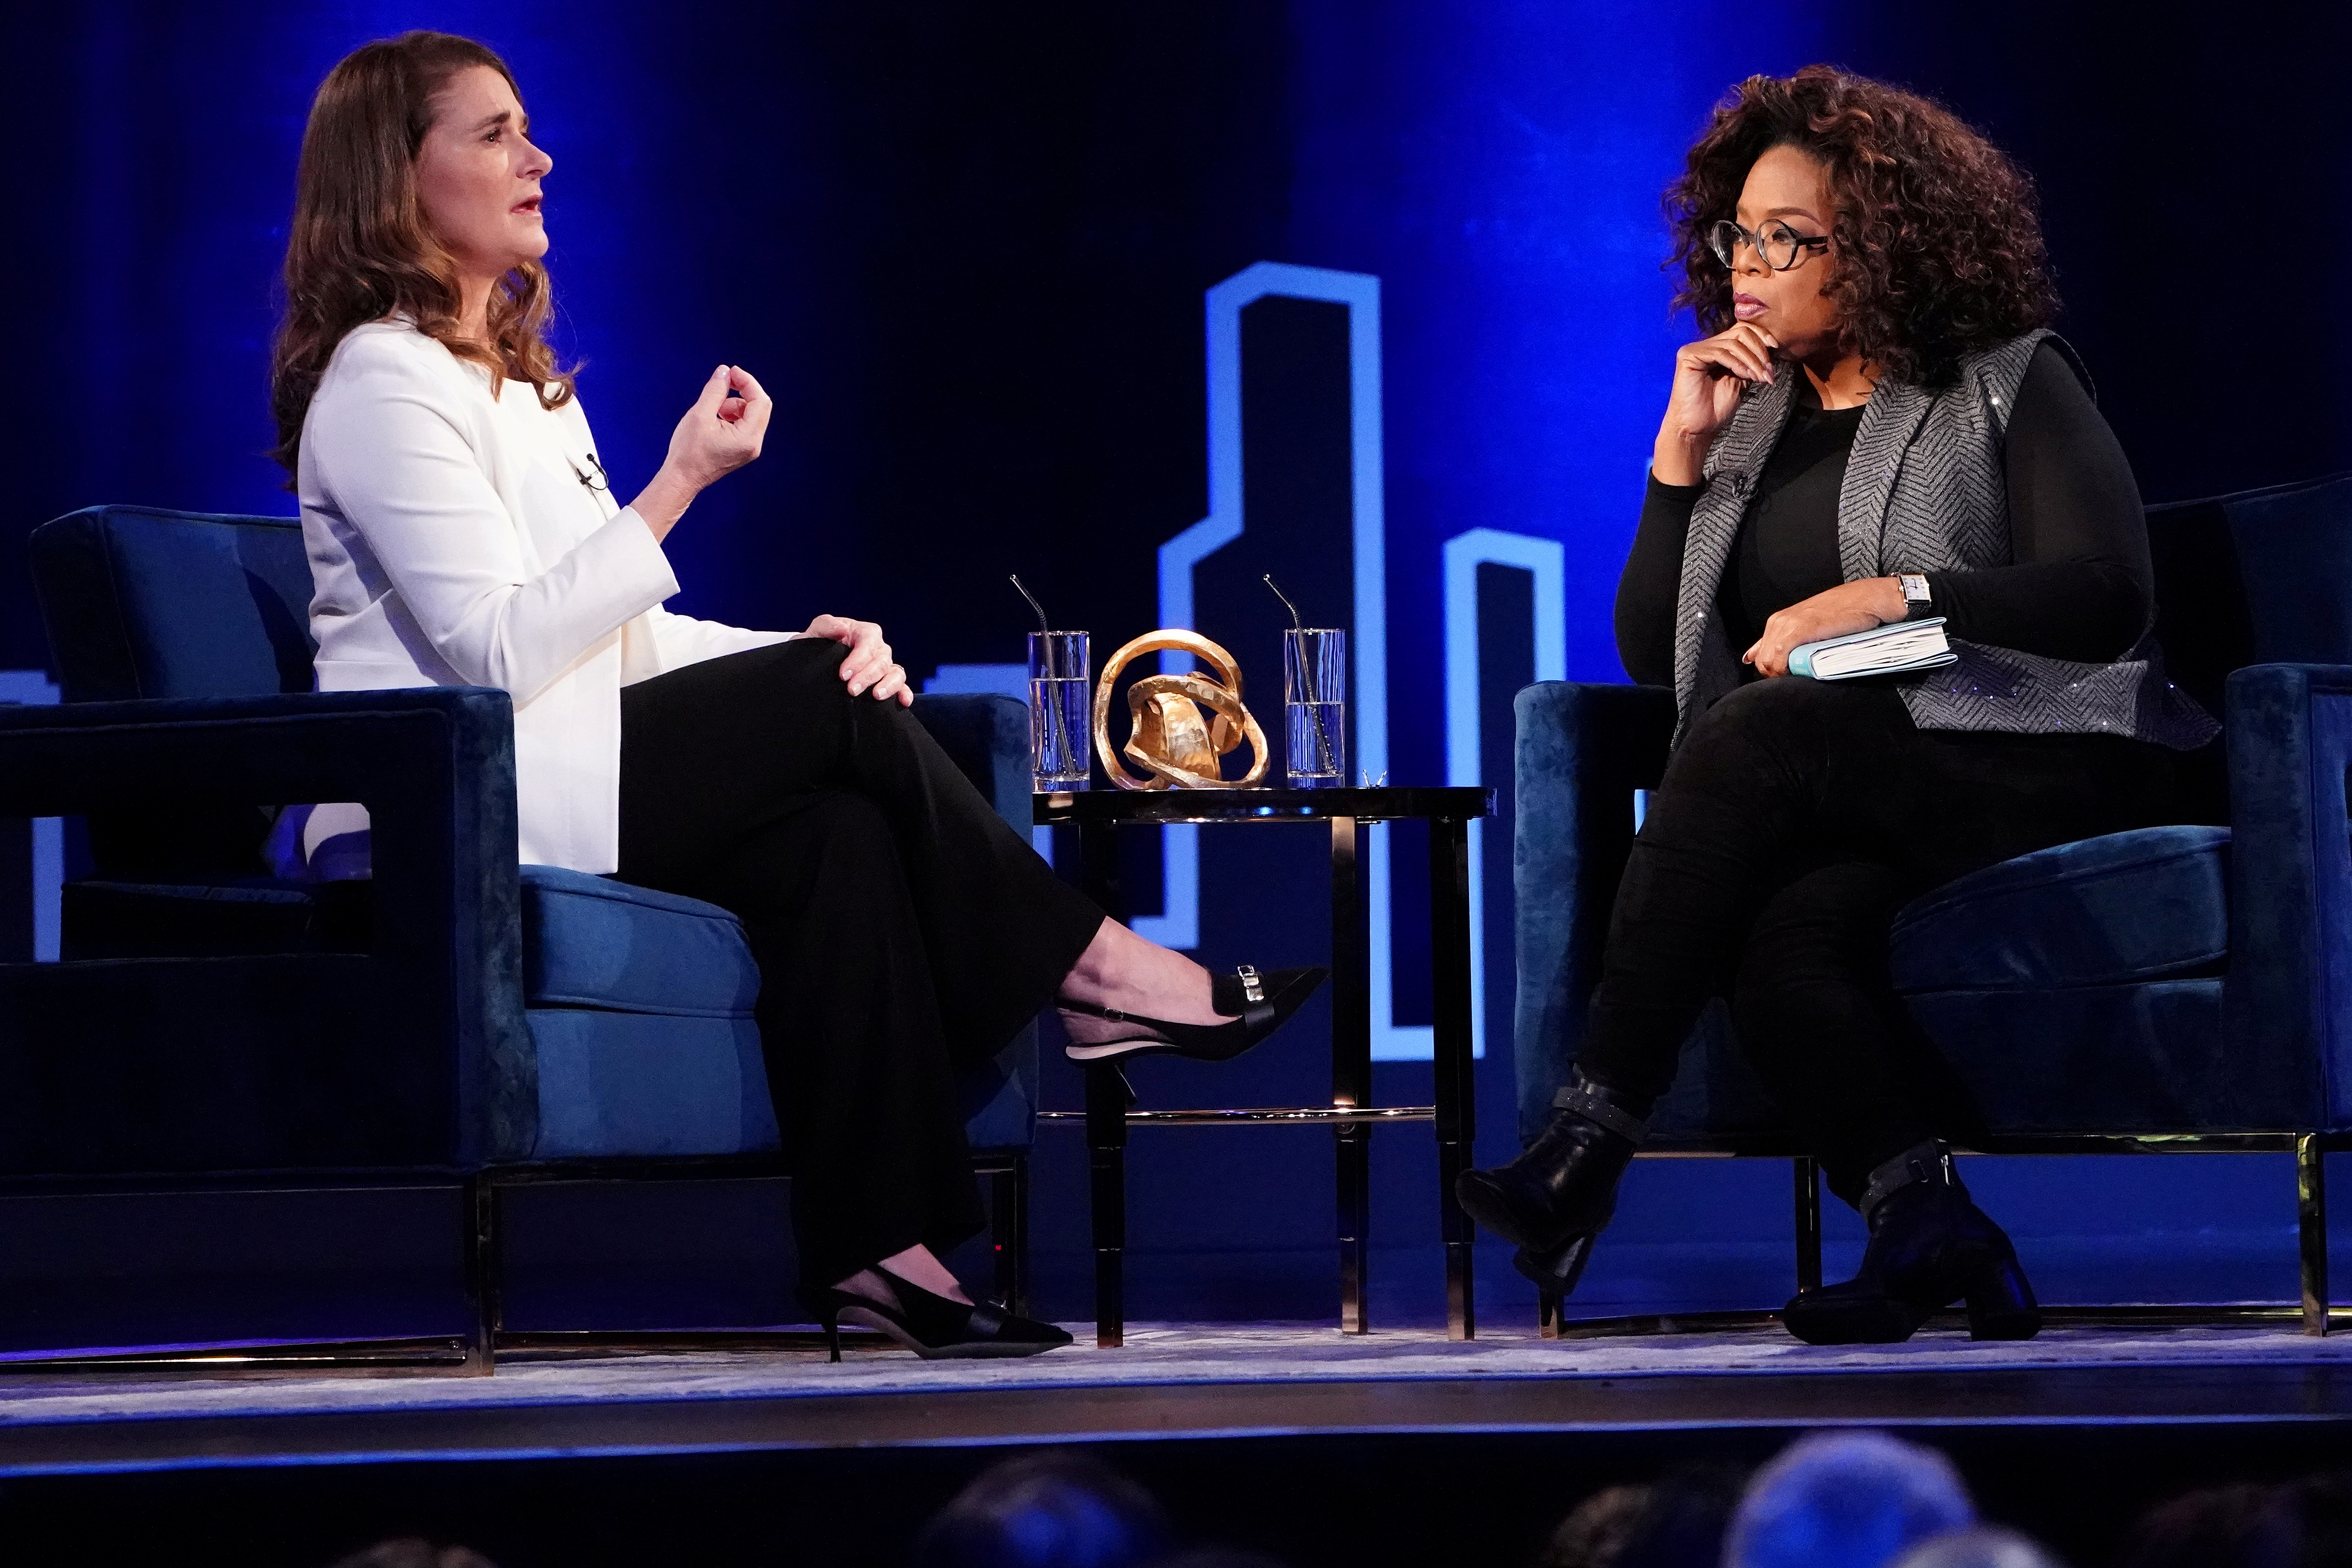 Melinda Gates (L) speaks to Oprah Winfrey on stage during a taping of her TV show in the Manhattan borough of New York City, New York, U.S., February 5, 2019. REUTERS/Carlo Allegri